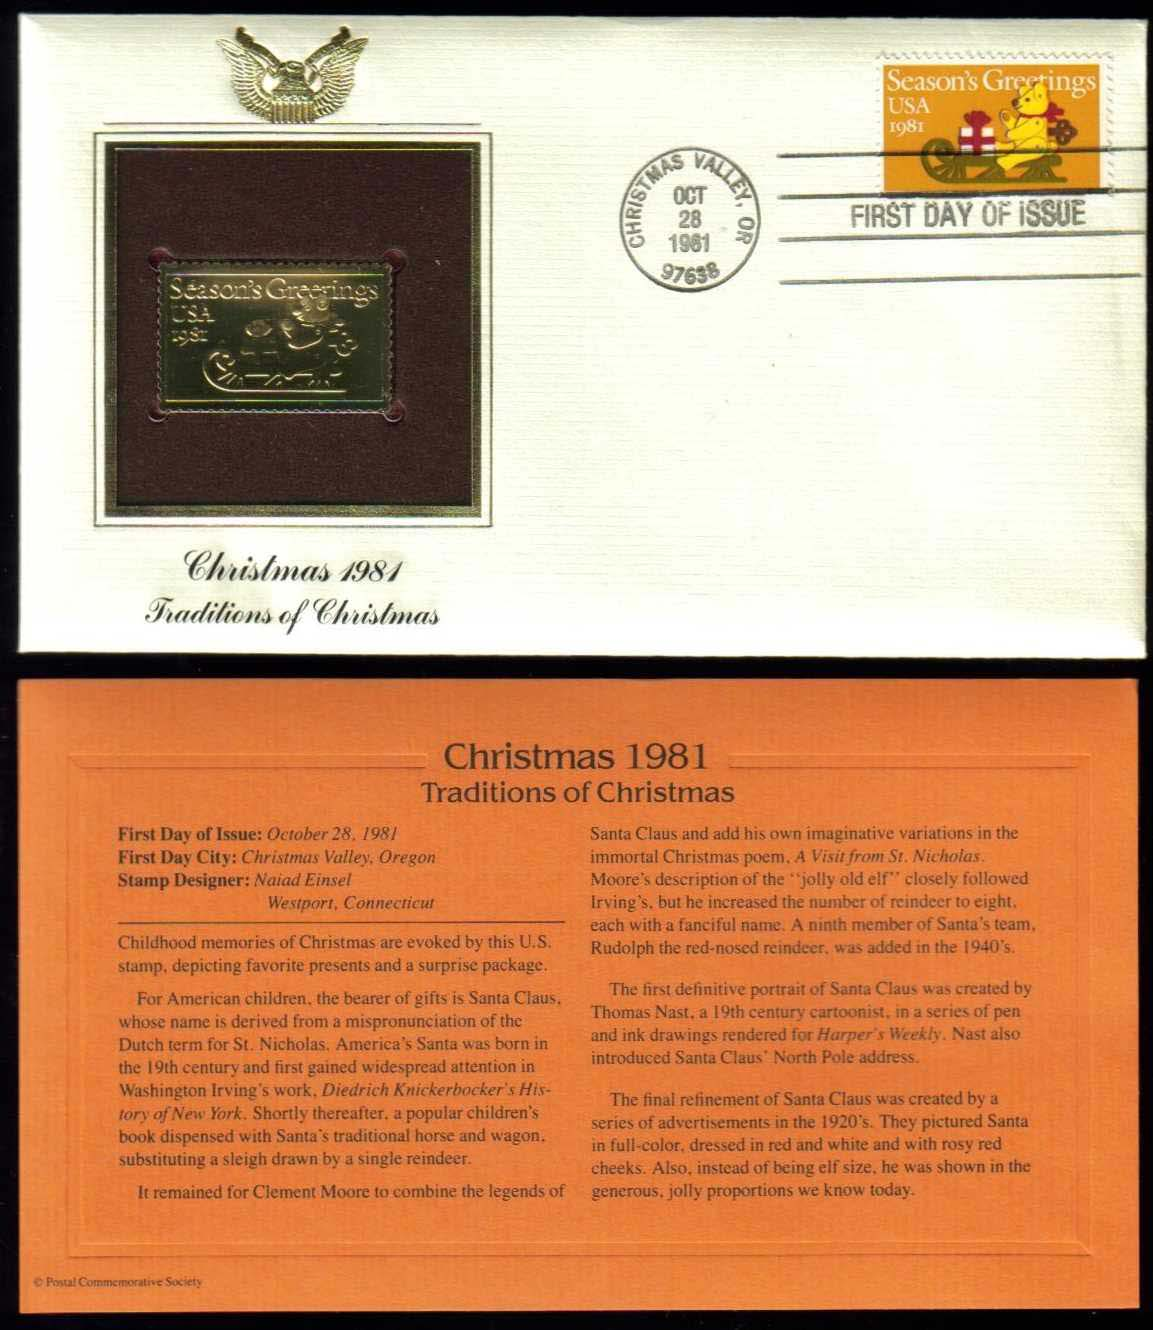 Scott 1940 Golden Replica (22Kt) unaddressed FDC <p> <a href=&quot;/images/USA-Scott-1940-Gold.jpg&quot;><font color=green><b>View the image</a></b></font>